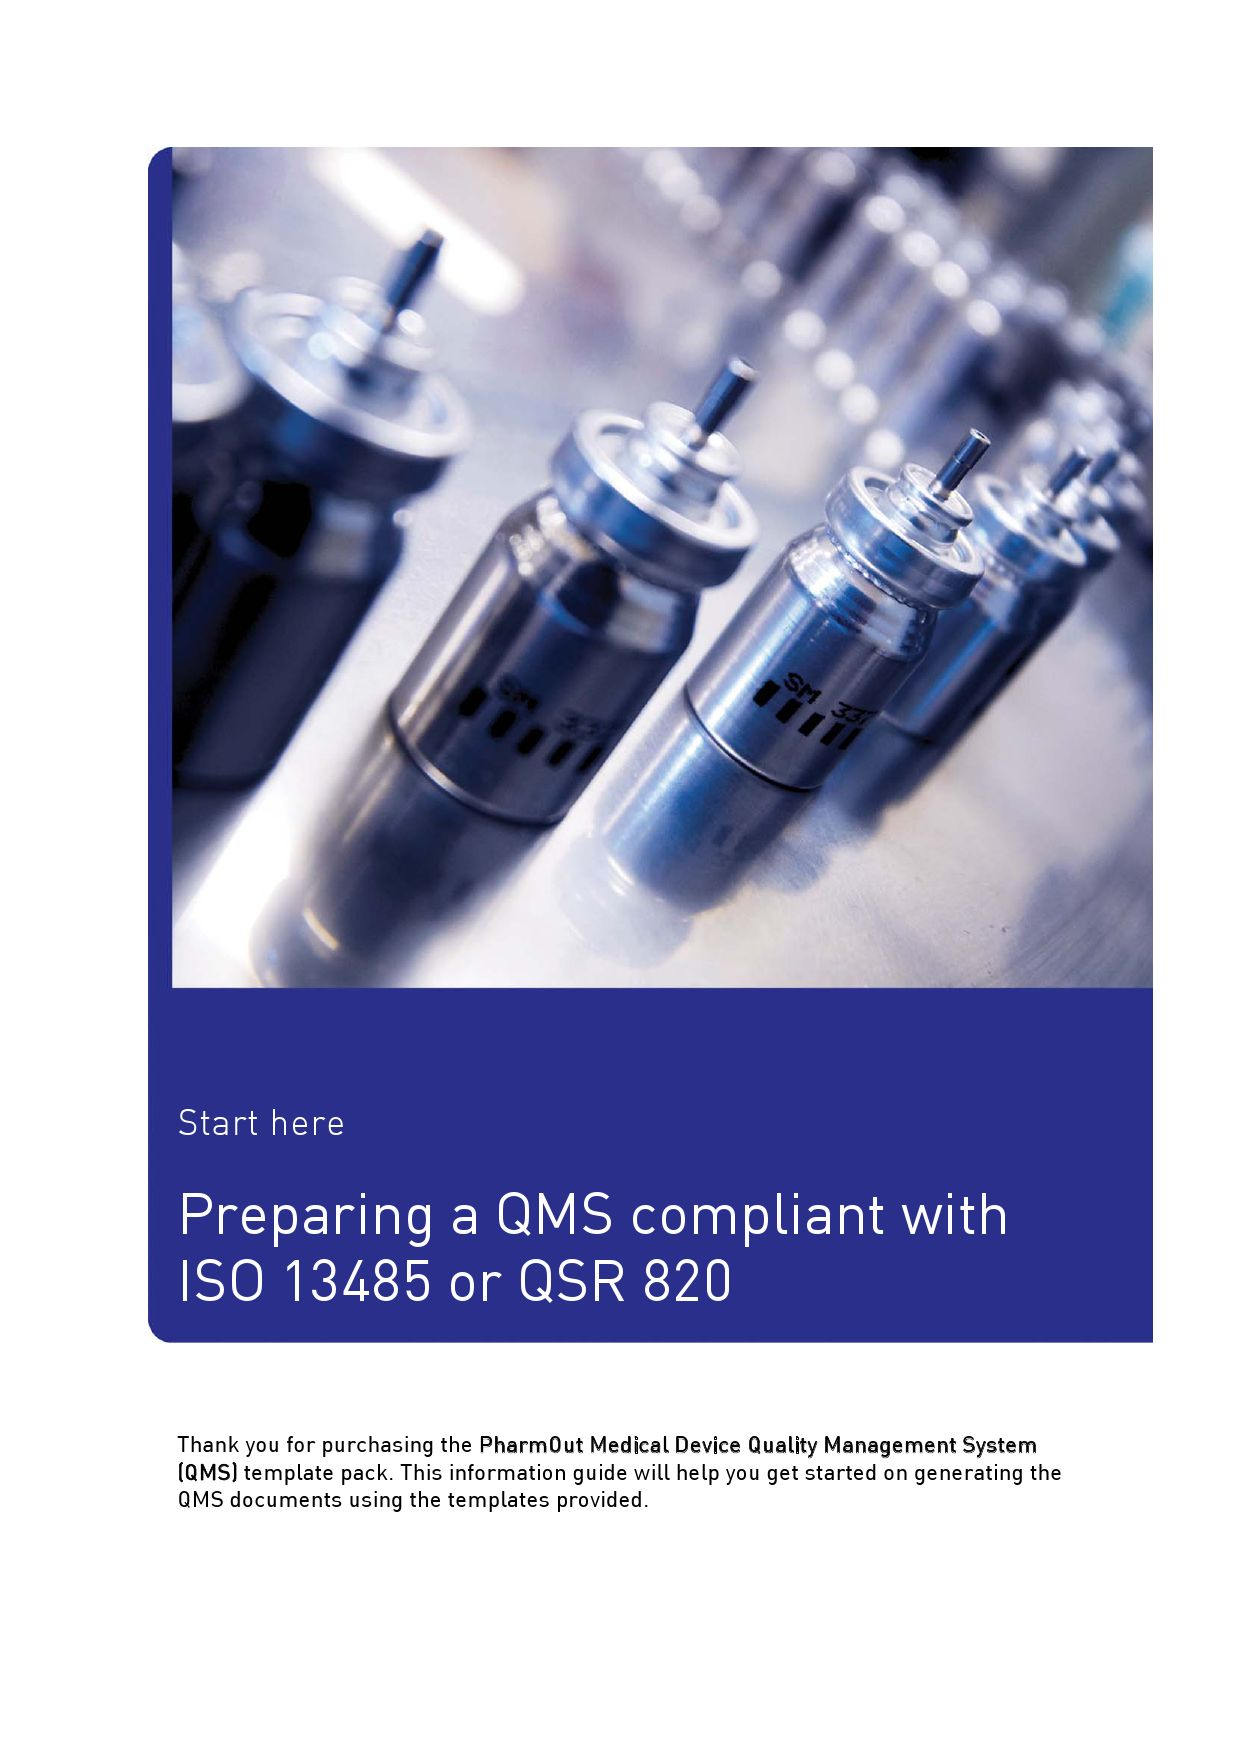 PharmOut Medical Device QMS template pack by PharmOut - issuu